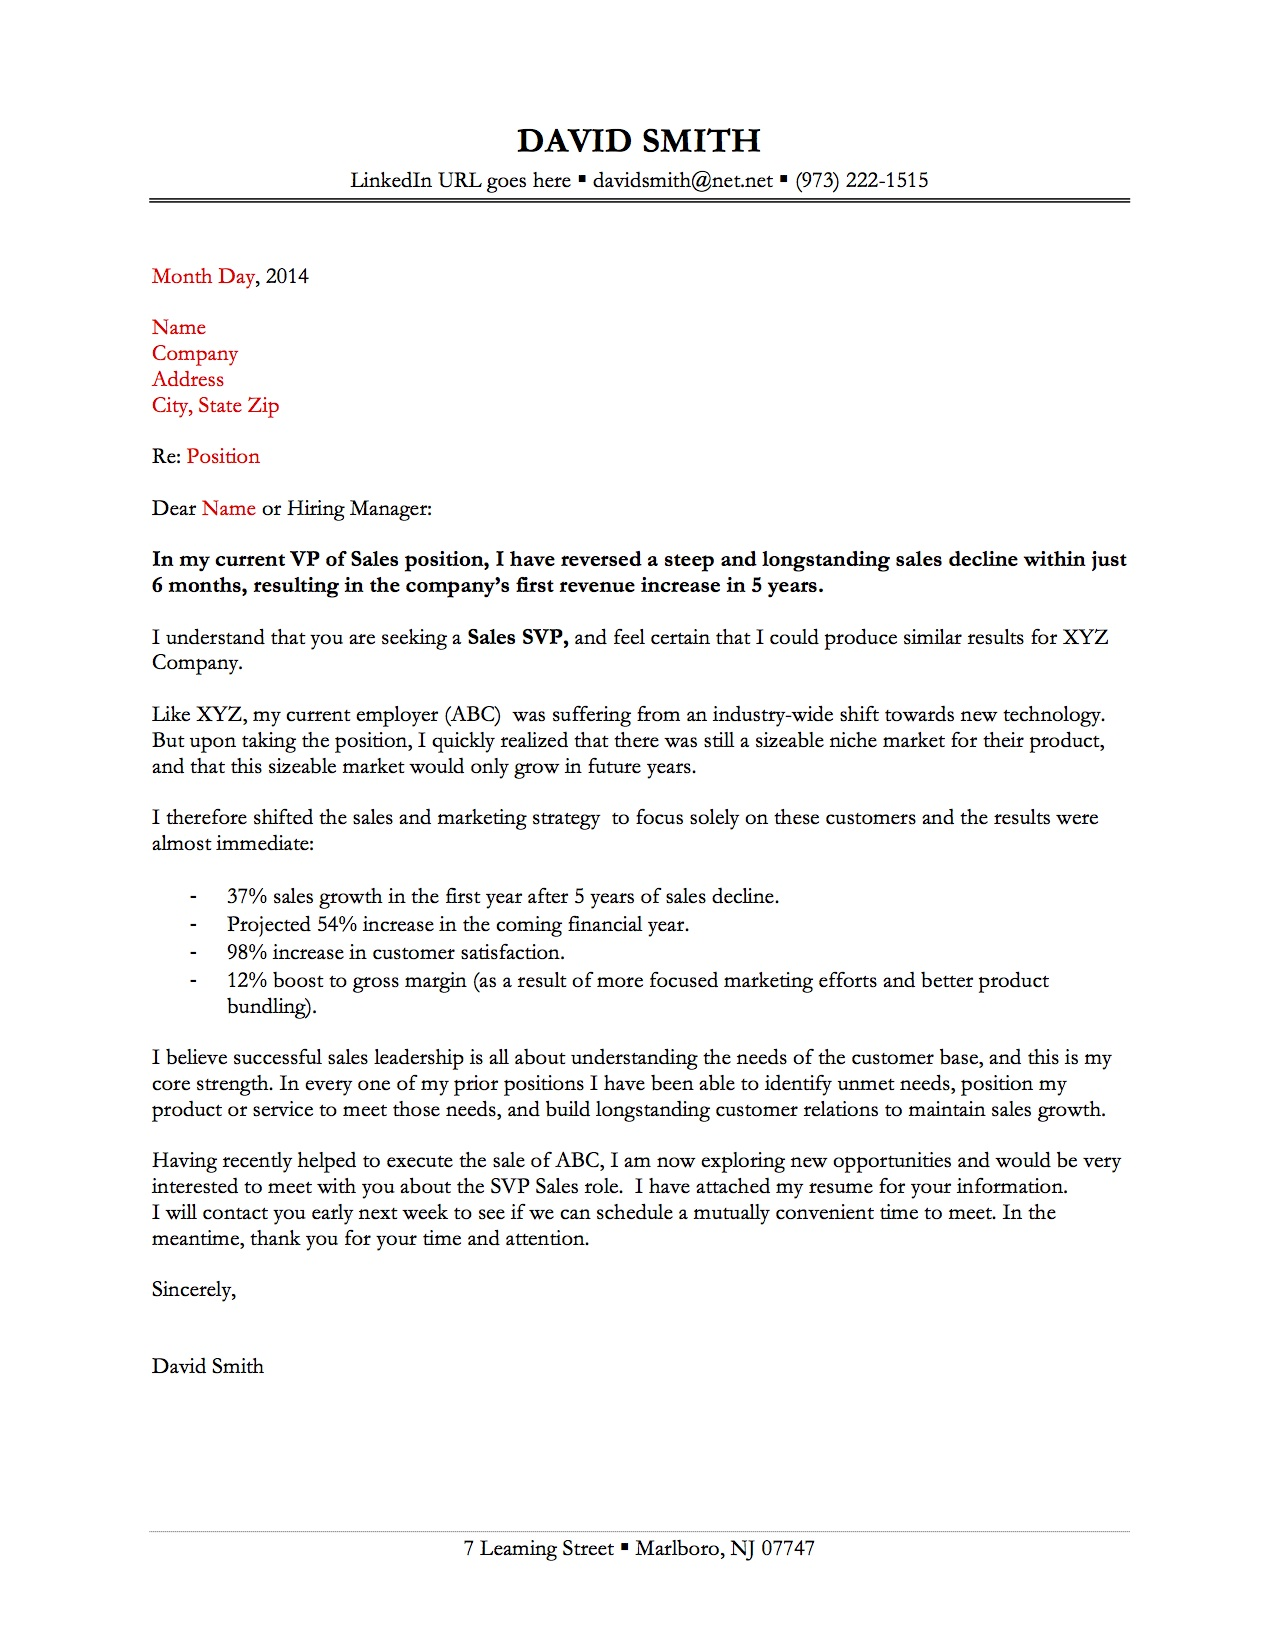 cover letter to letter writing cover letter best receptionist – What Should I Put on a Cover Letter